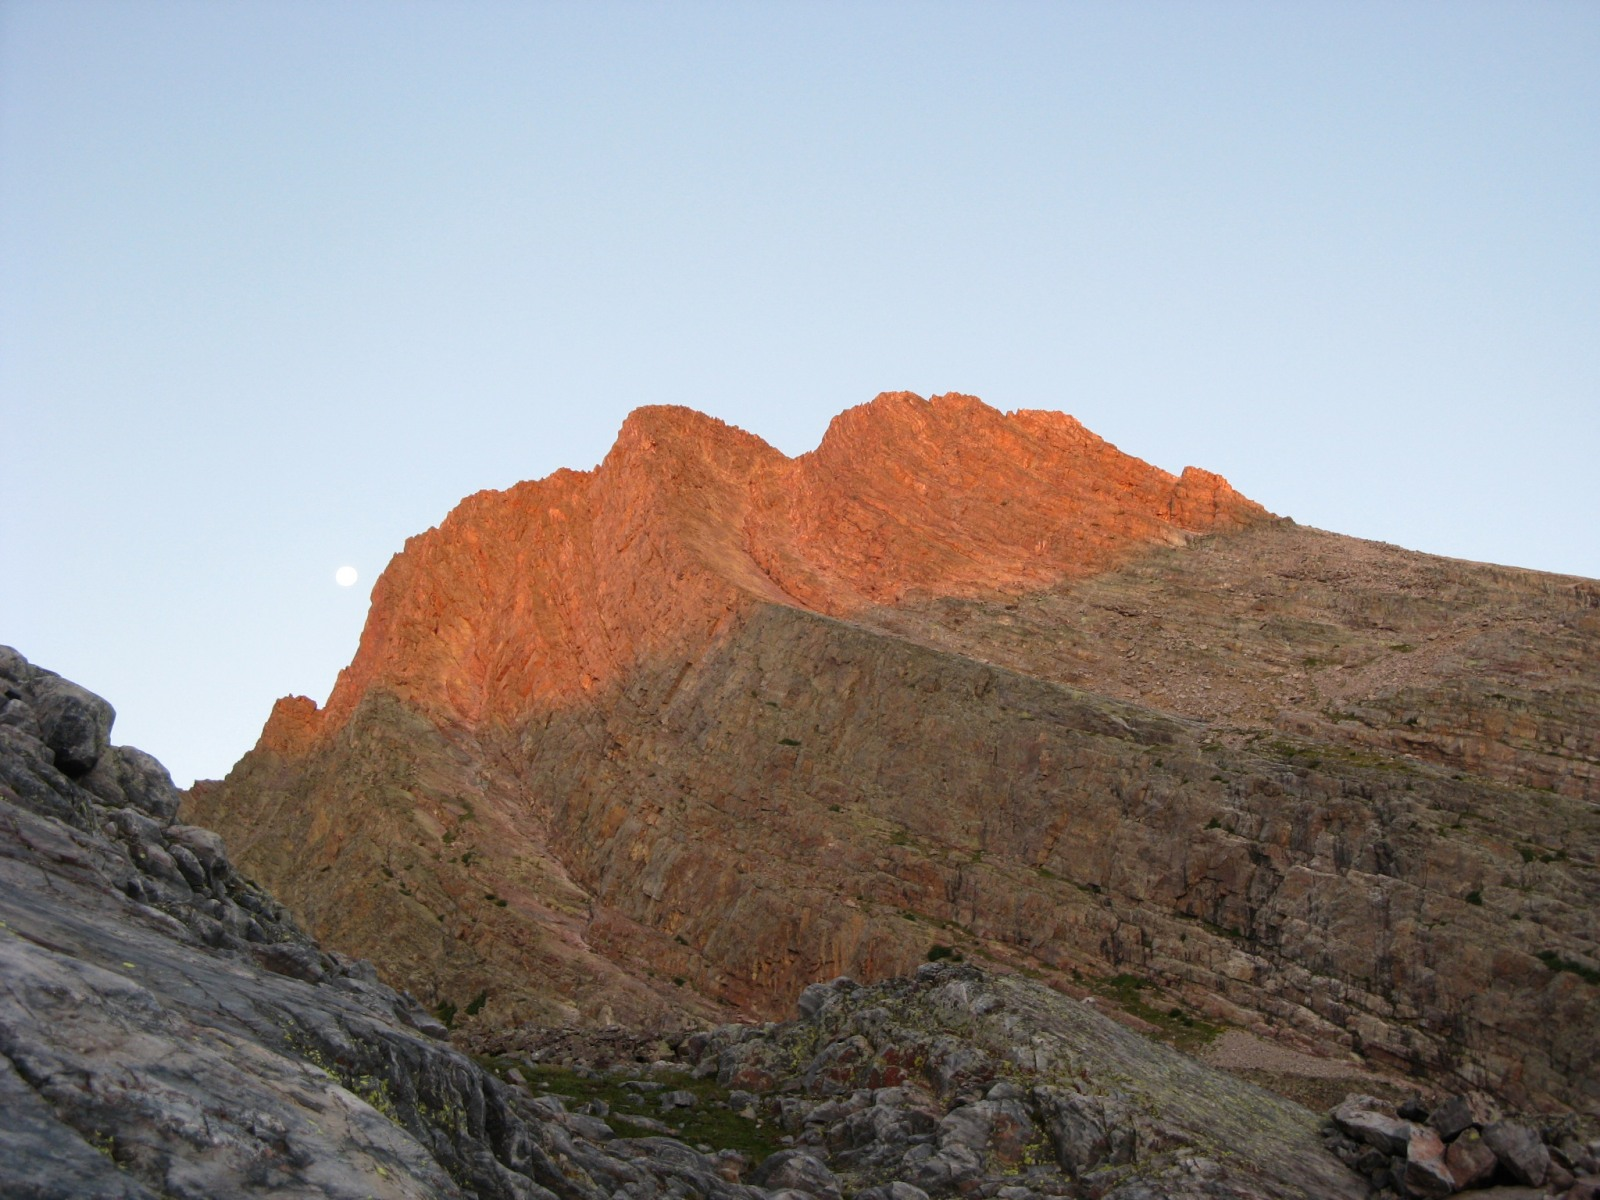 Arrow Peak from the base of Vestal's Wham Ridge at sunrise